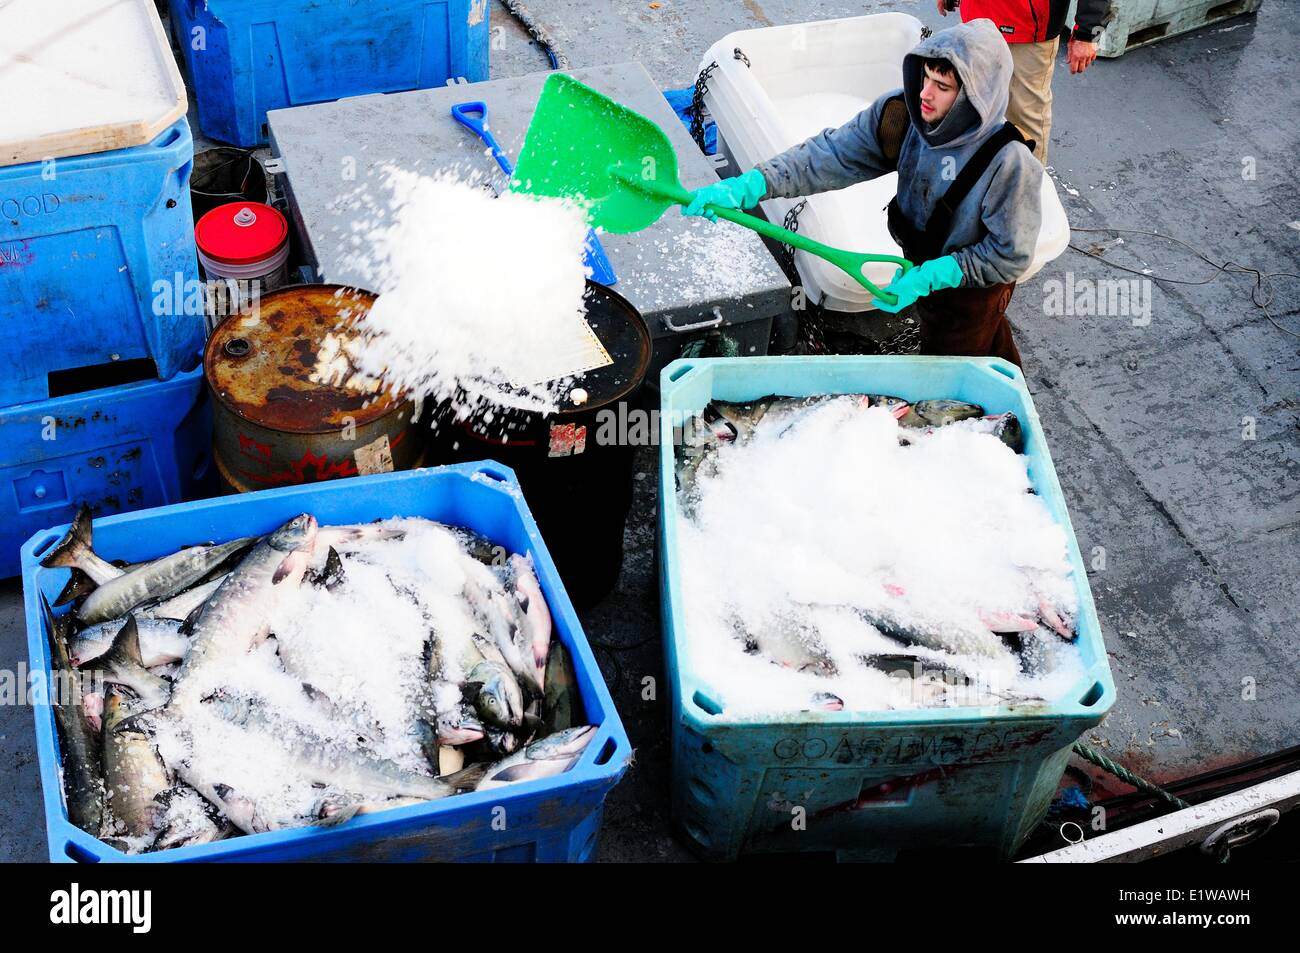 A fisherman spreads ice over Chum salmon (Oncorhynchus keta) that are being stored in containers on a fish boat - Stock Image